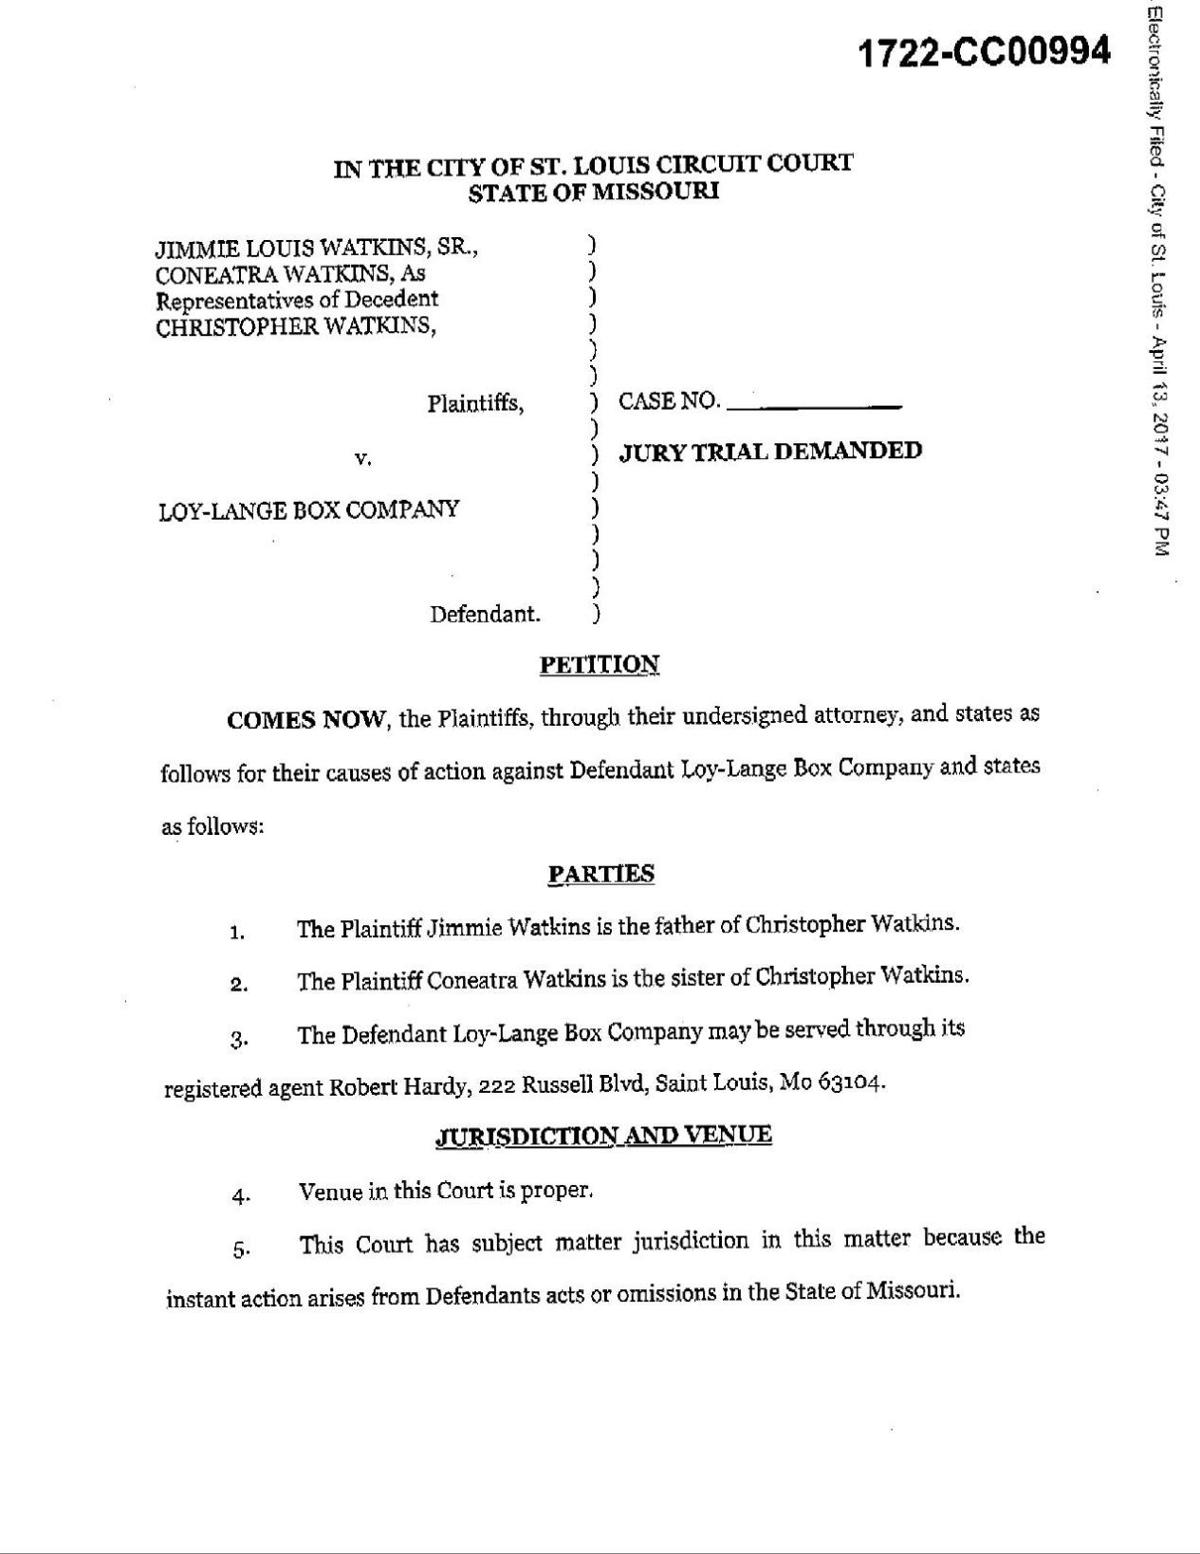 Read the wrongful death lawsuit by Coneatra and Jimmie Louis Watkins